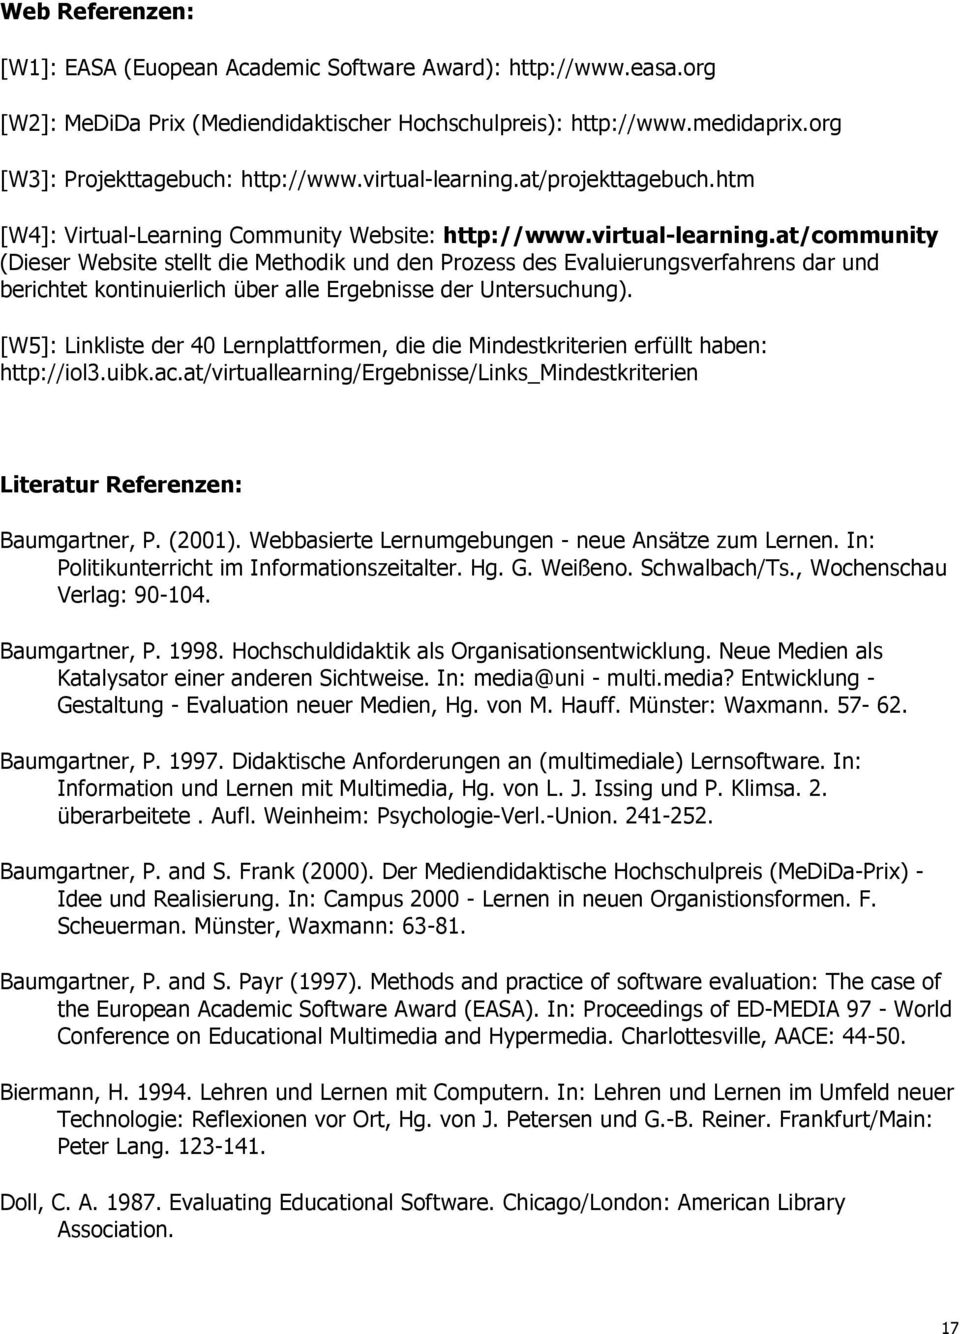 [W5]: Linkliste der 40 Lernplattformen, die die Mindestkriterien erfüllt haben: http://iol3.uibk.ac.at/virtuallearning/ergebnisse/links_mindestkriterien Literatur Referenzen: Baumgartner, P. (2001).